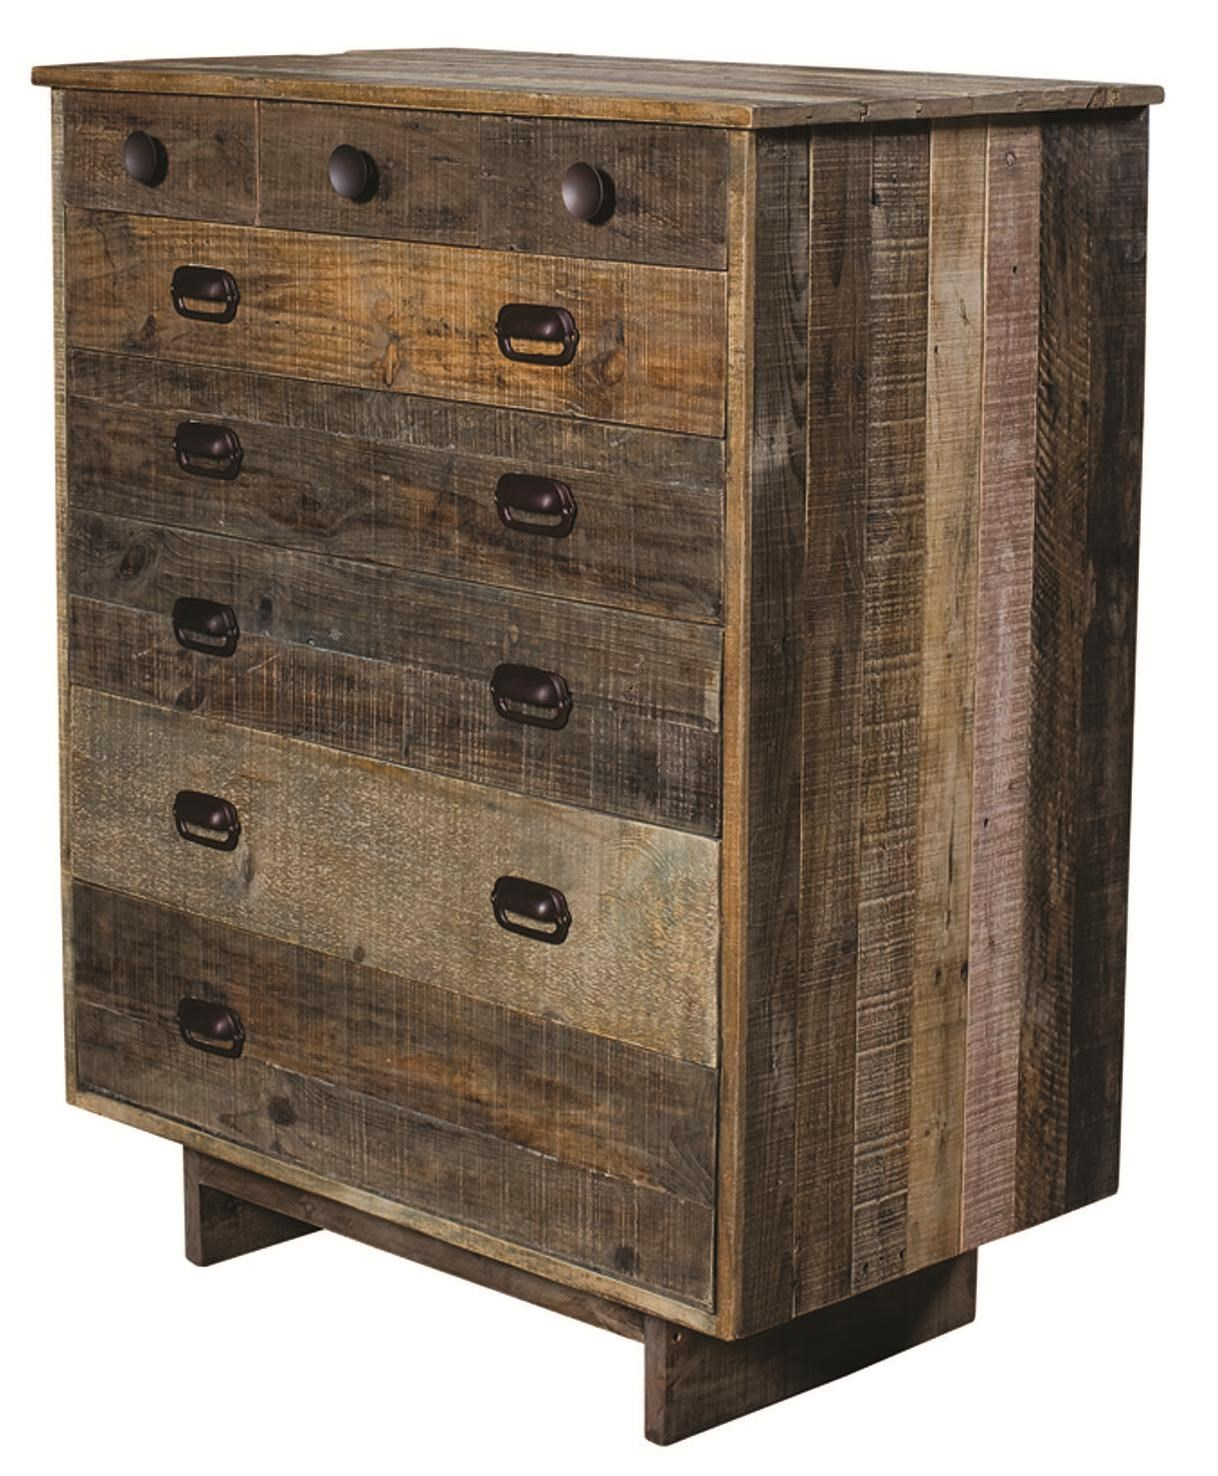 Four Hands Sierra Freel 6 Drawer Chest With Metal Drawer Pulls